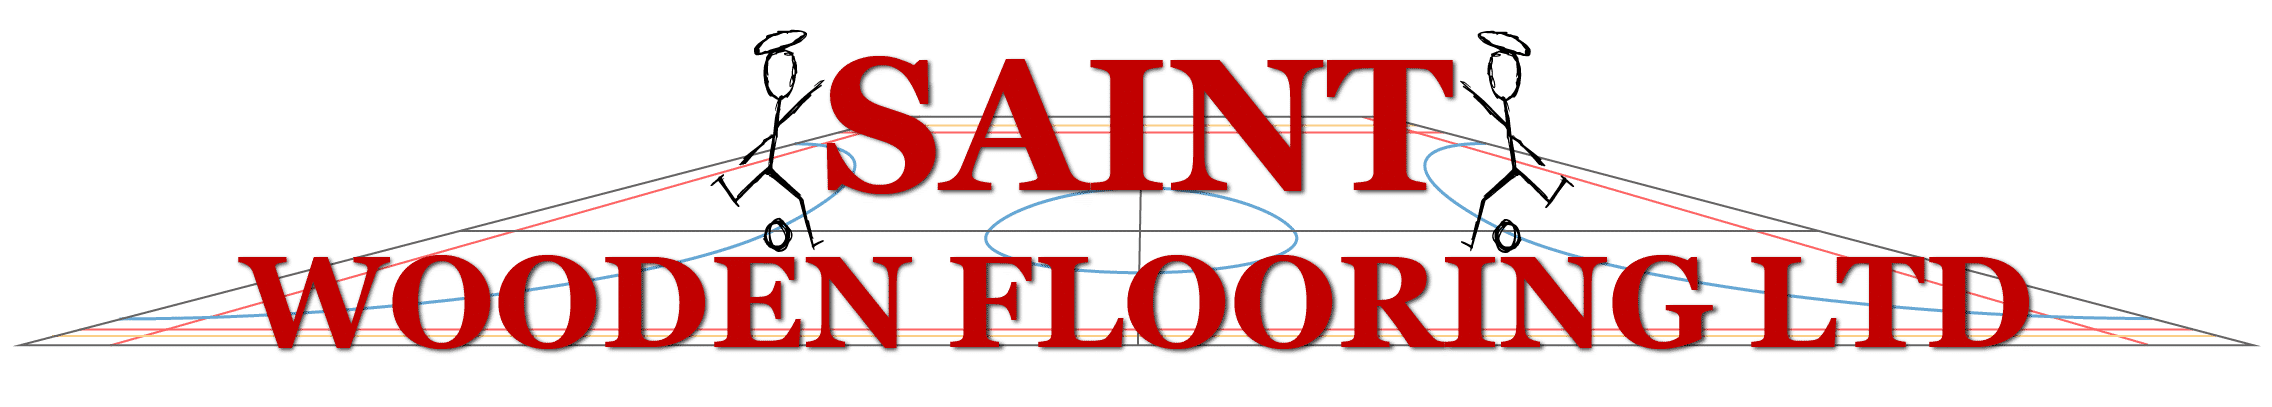 Saint Wooden Flooring Ltd